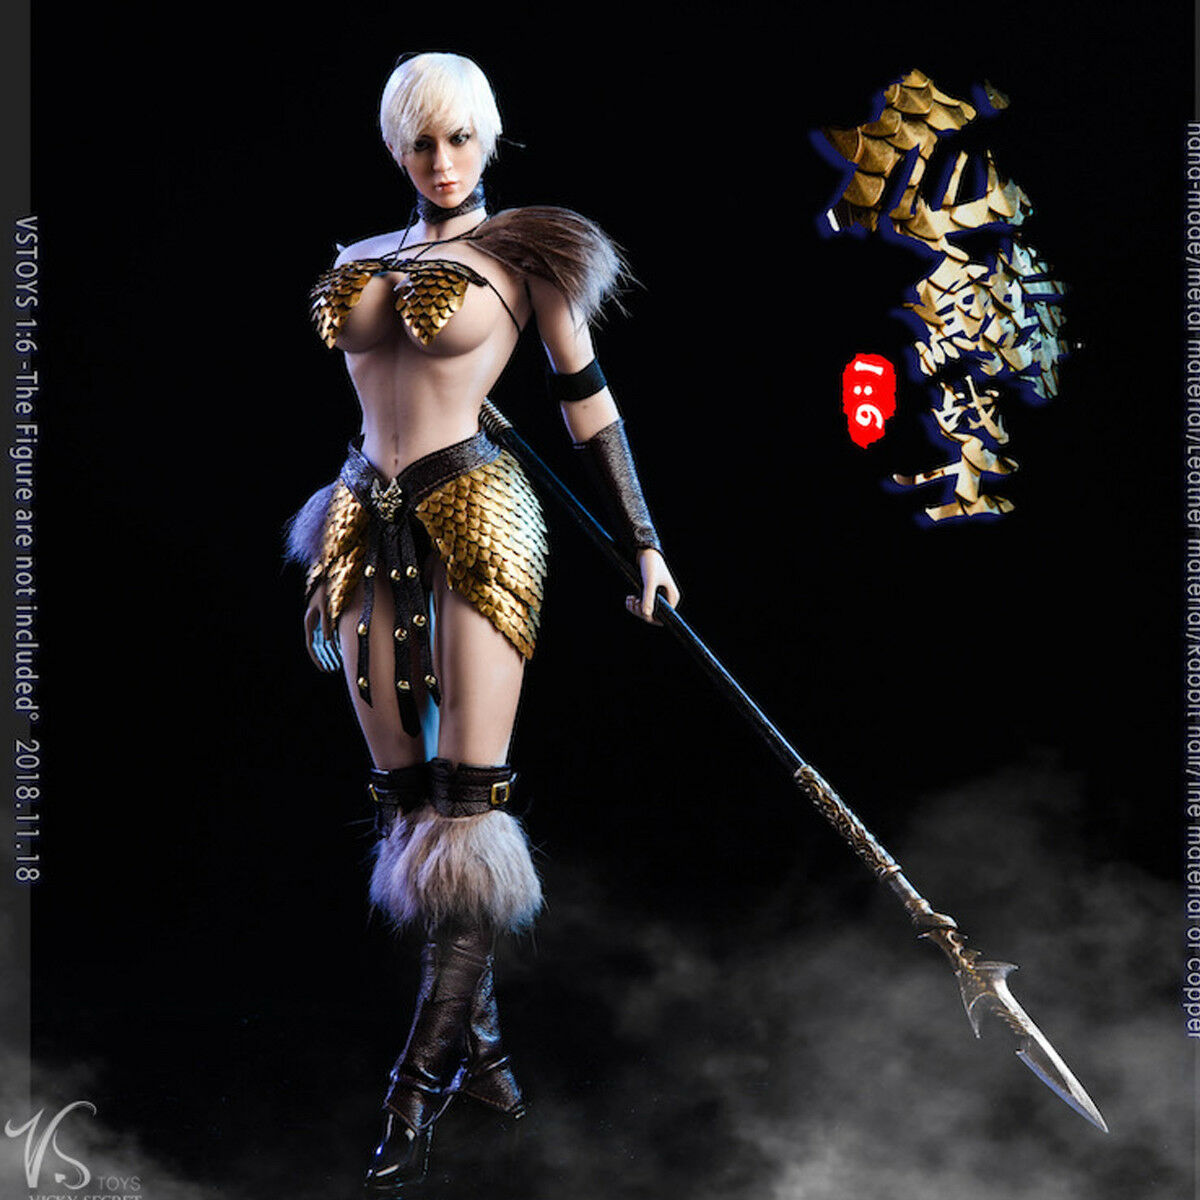 VSTOYS 1 6 18XG32 B  Dragon Scale Female Warrior Set Accessories